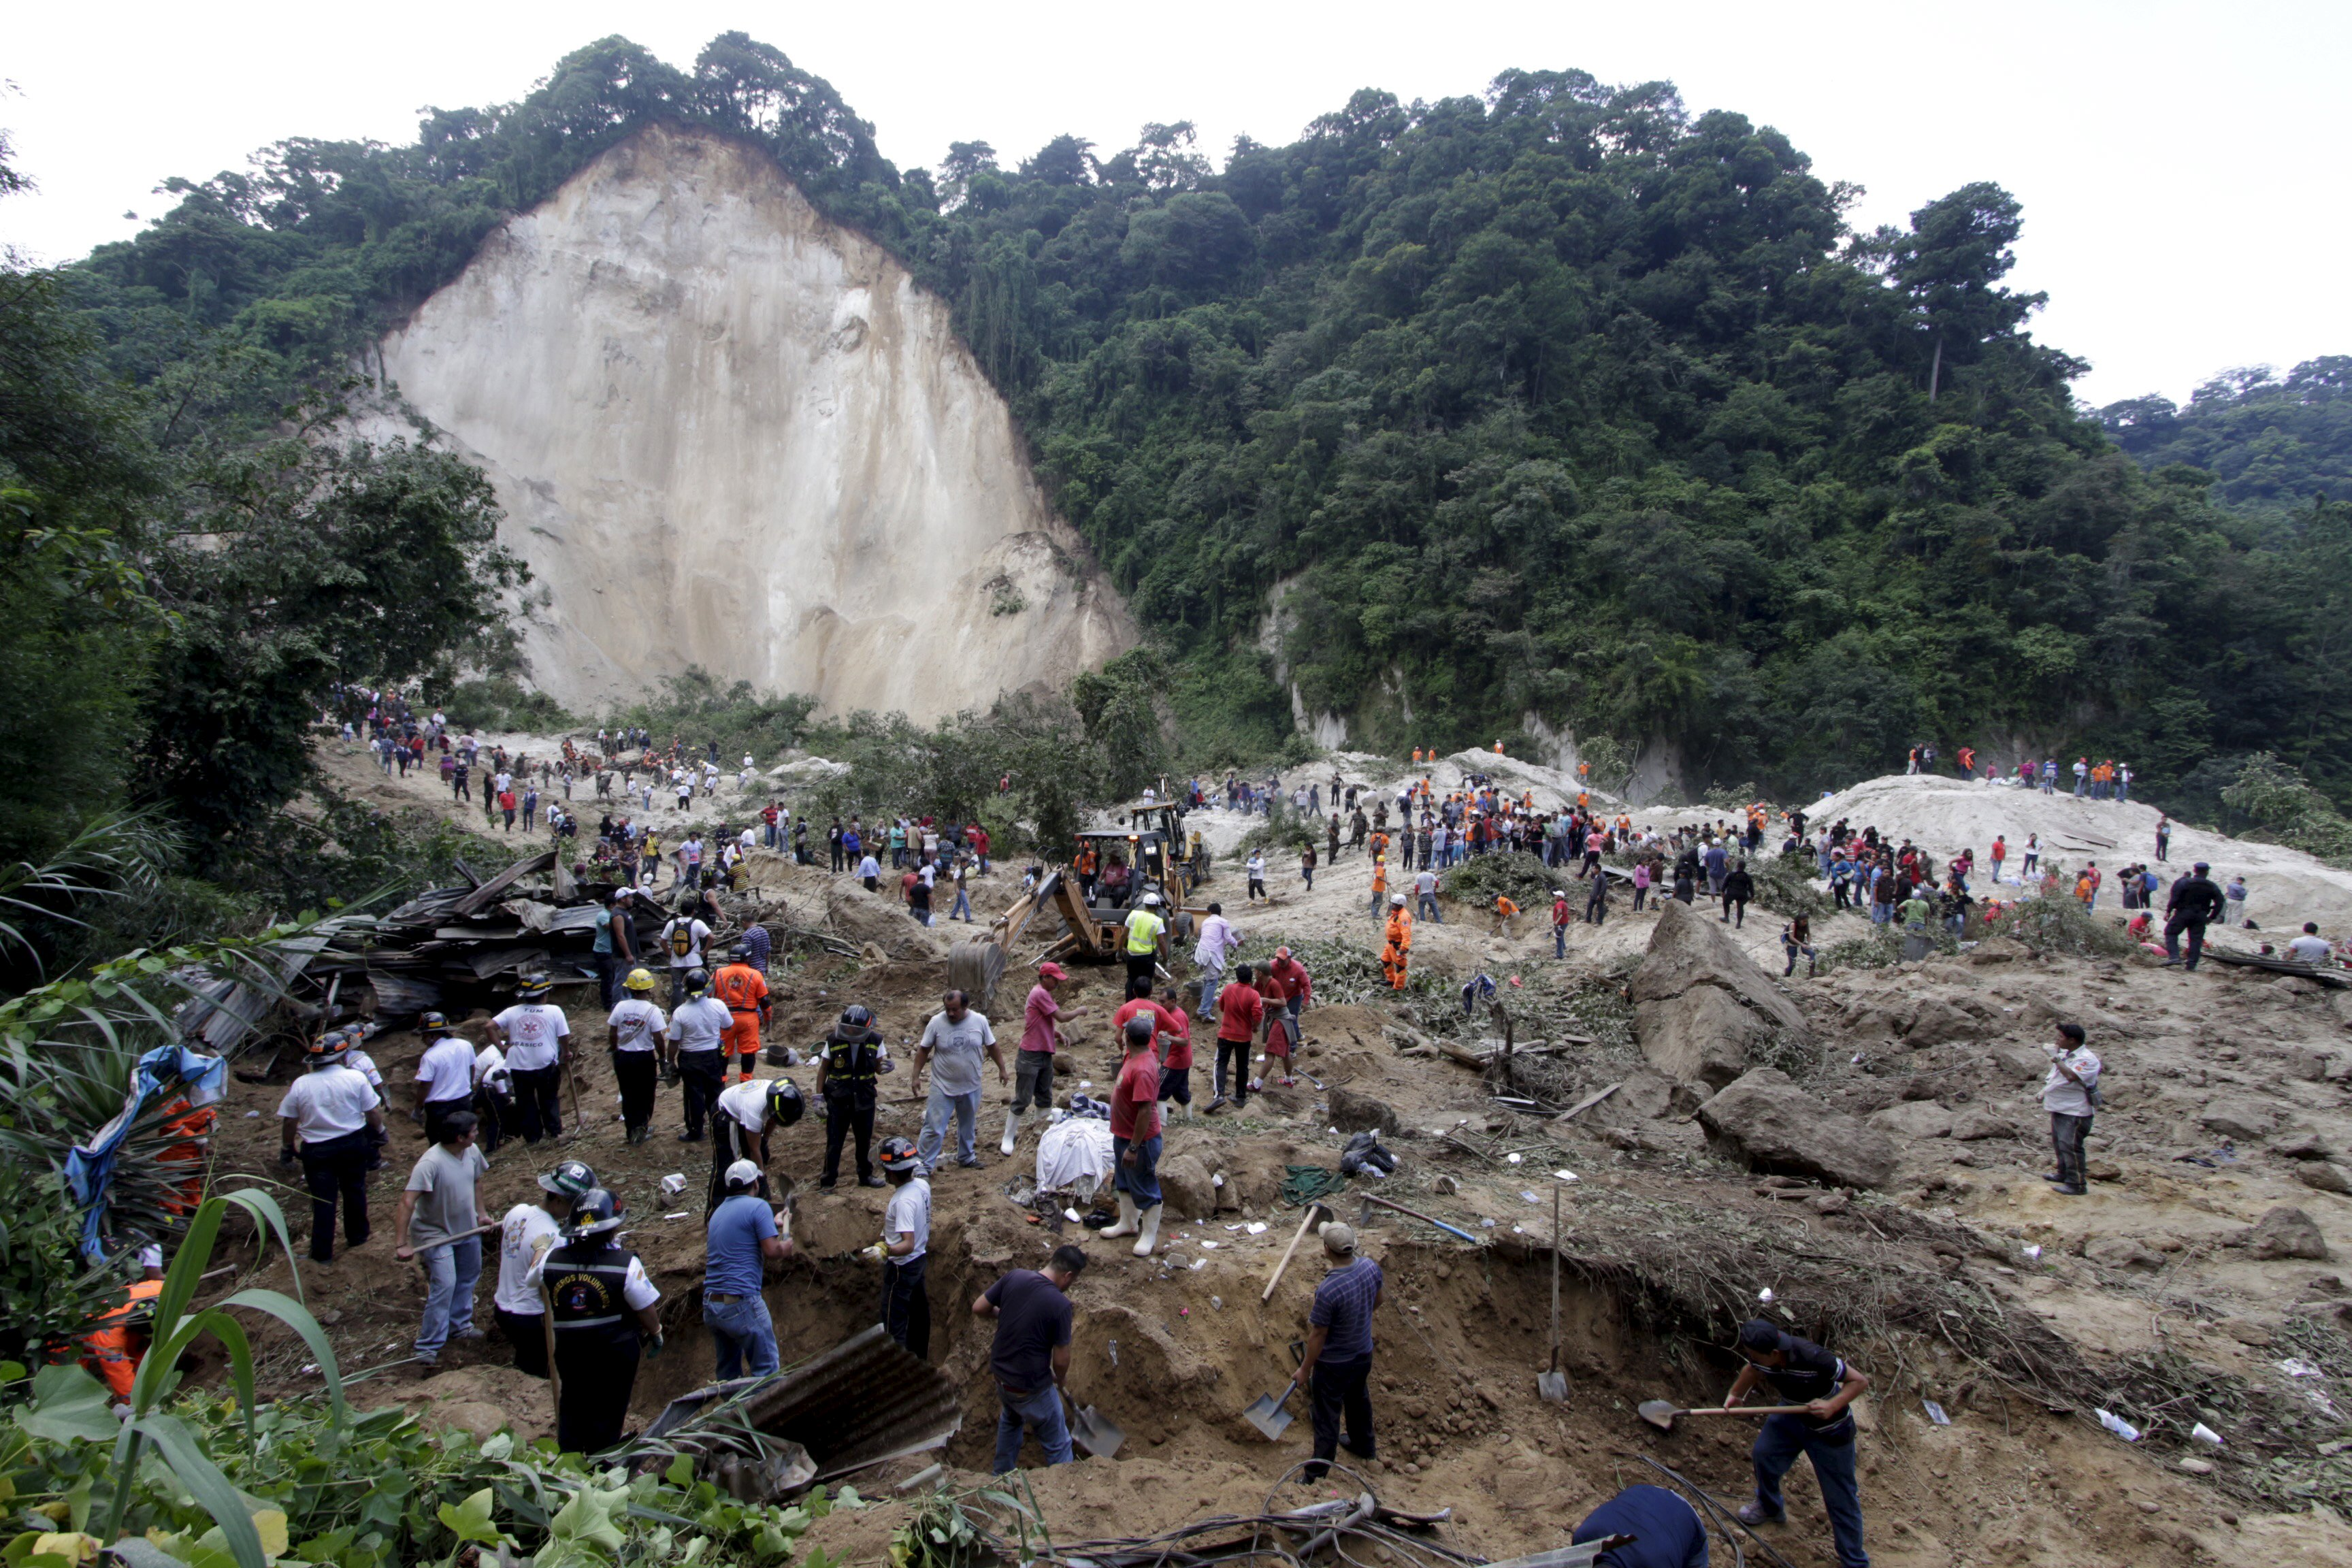 Rescue team members and volunteers search for mudslide victims in Santa Catarina Pinula, on the outskirts of Guatemala City, October 2, 2015. Hundreds of rescue workers dug through sludge and rock on Friday looking for survivors of a massive mudslide in Guatemala that killed at least nine people and left as many as 600 missing, burying homes in a town on the edge of the capital. Heavy rains swept a torrent of boulders and mud over dozens of homes on Thursday night in Santa Catarina Pinula on the southeastern flank of Guatemala City, one of the worst mudslides to hit the poor Central American country in recent memory. REUTERS/Josue Decavele      TPX IMAGES OF THE DAY